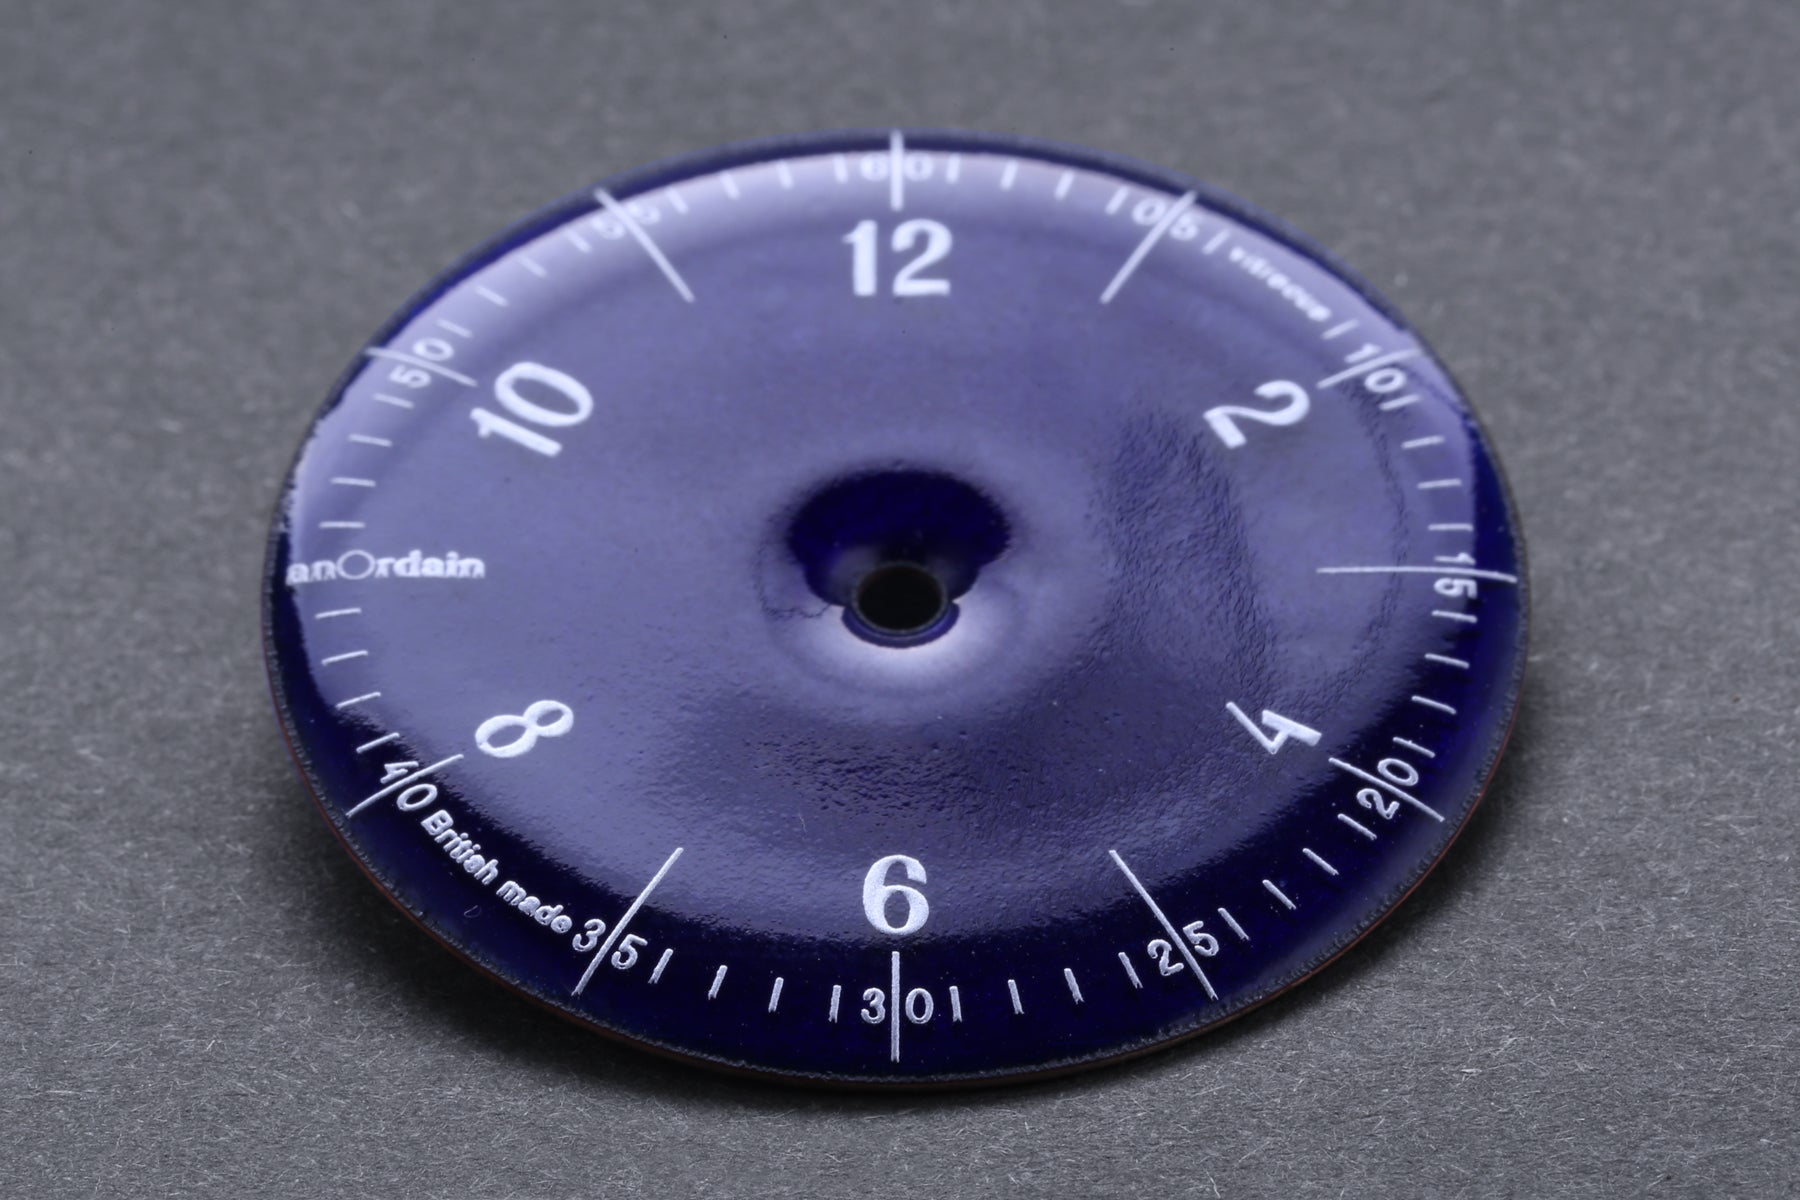 anOrdain translucent blue dial